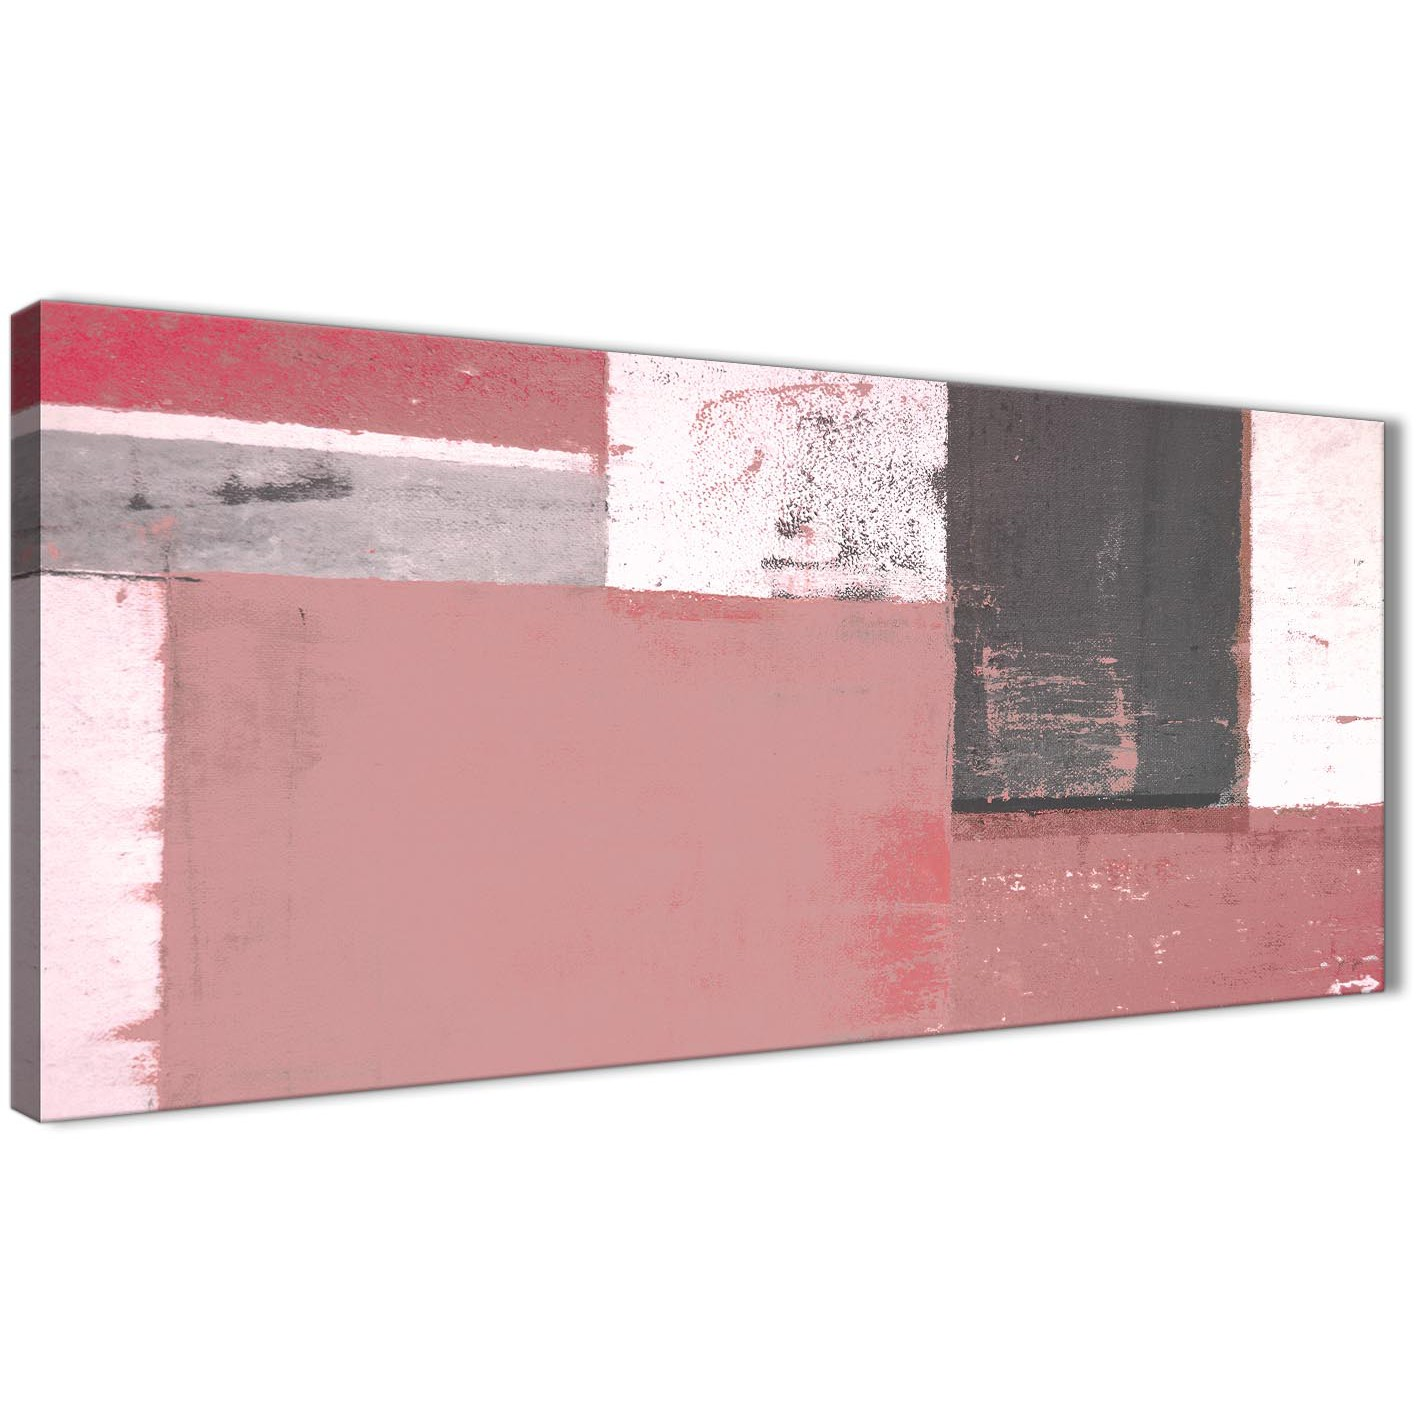 Blush pink grey abstract painting canvas wall art print modern 120cm wide 1334